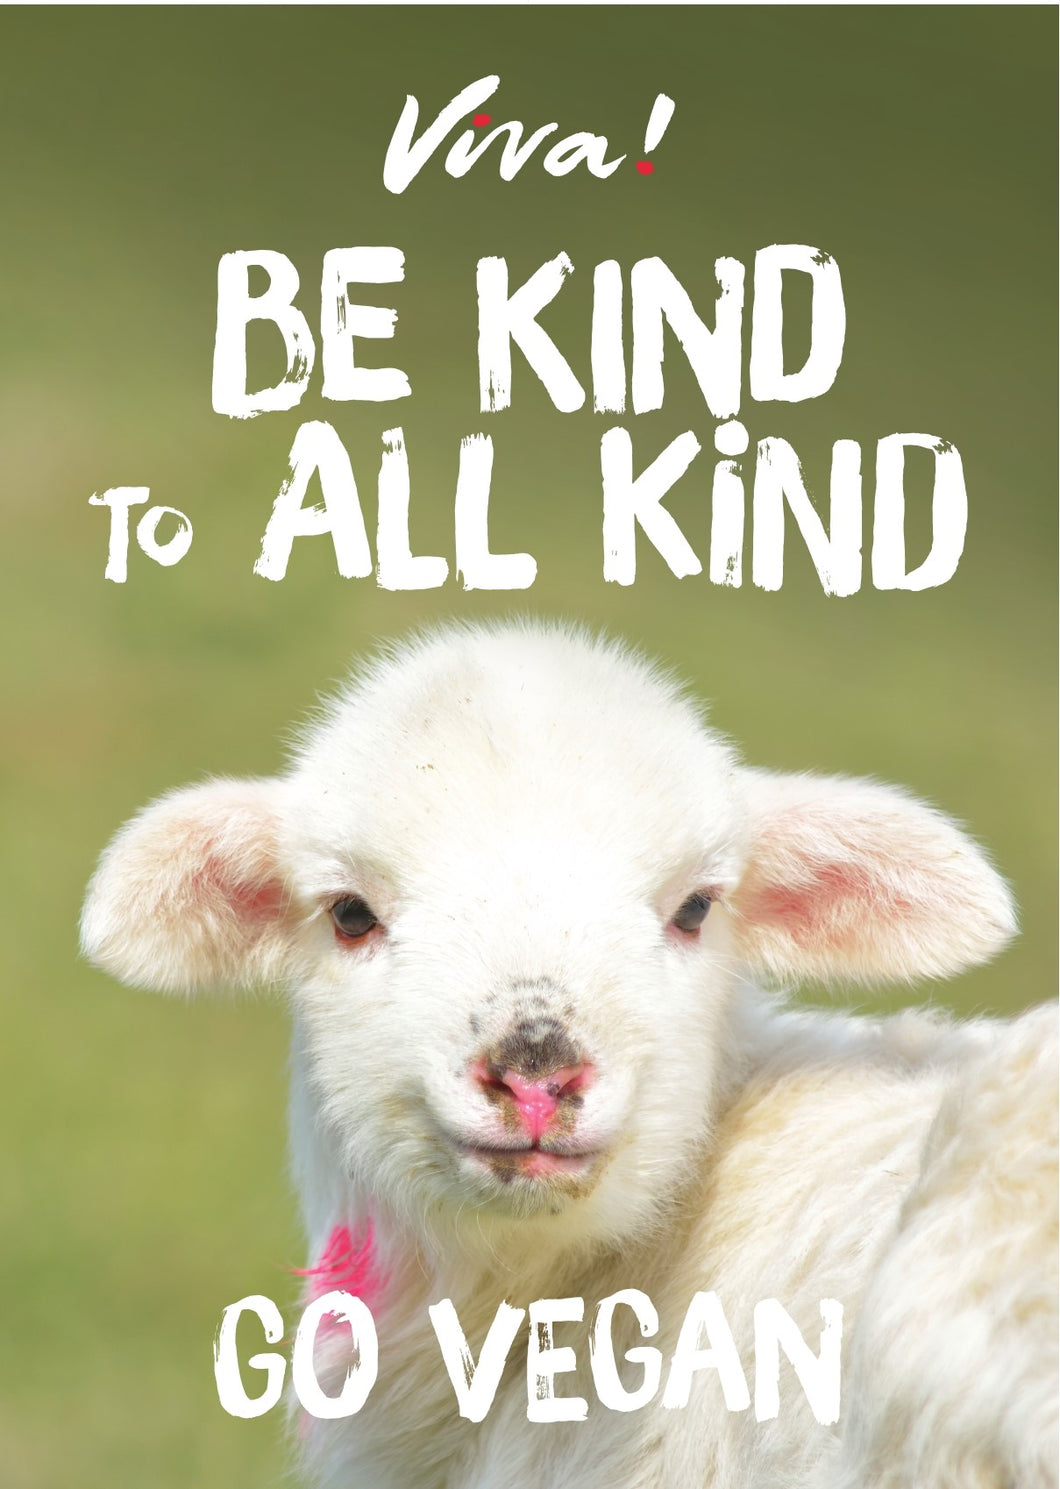 Viva! Be Kind to All Kind Lamb Poster